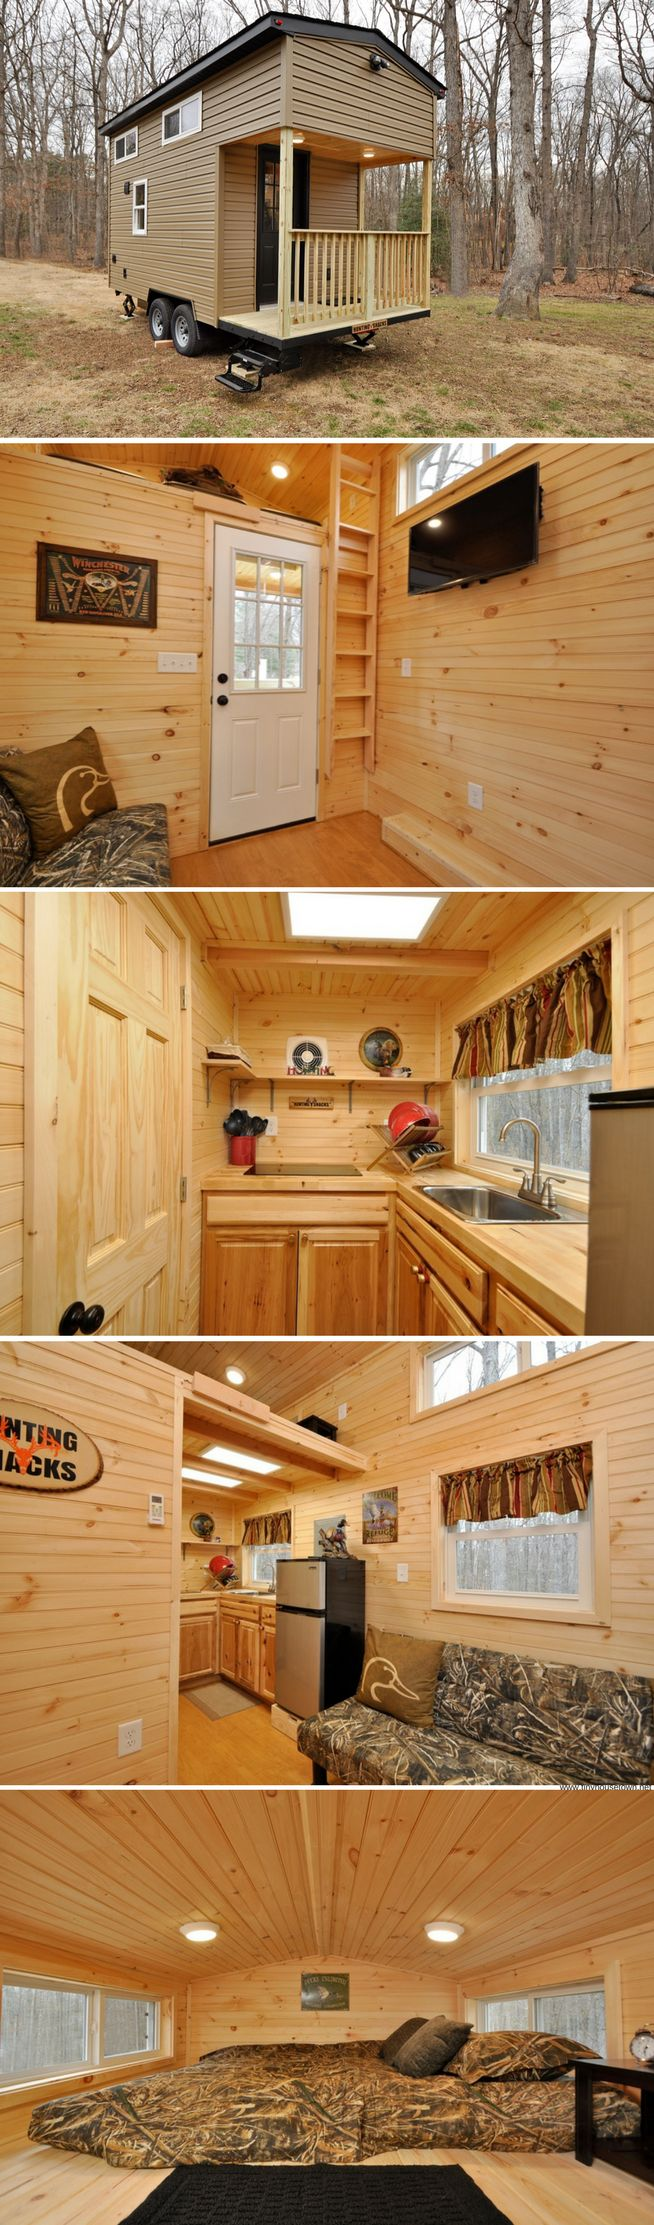 The Woodland: a 200 sq ft cabin from Tiny House Building Company